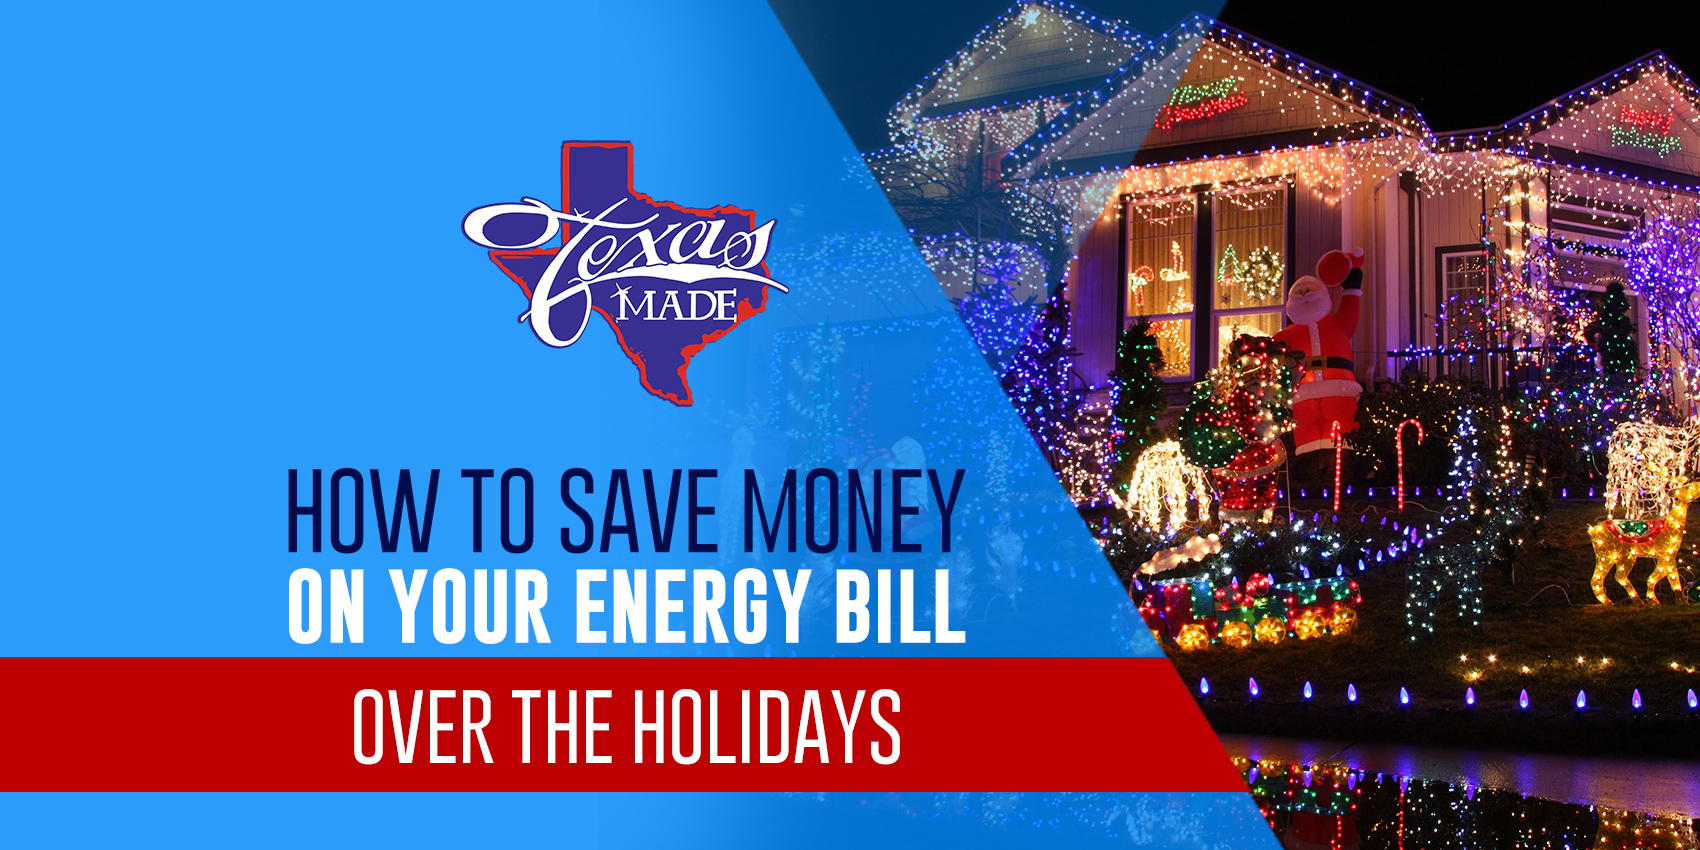 How to Save Money on Your Energy Bill Over the Holidays